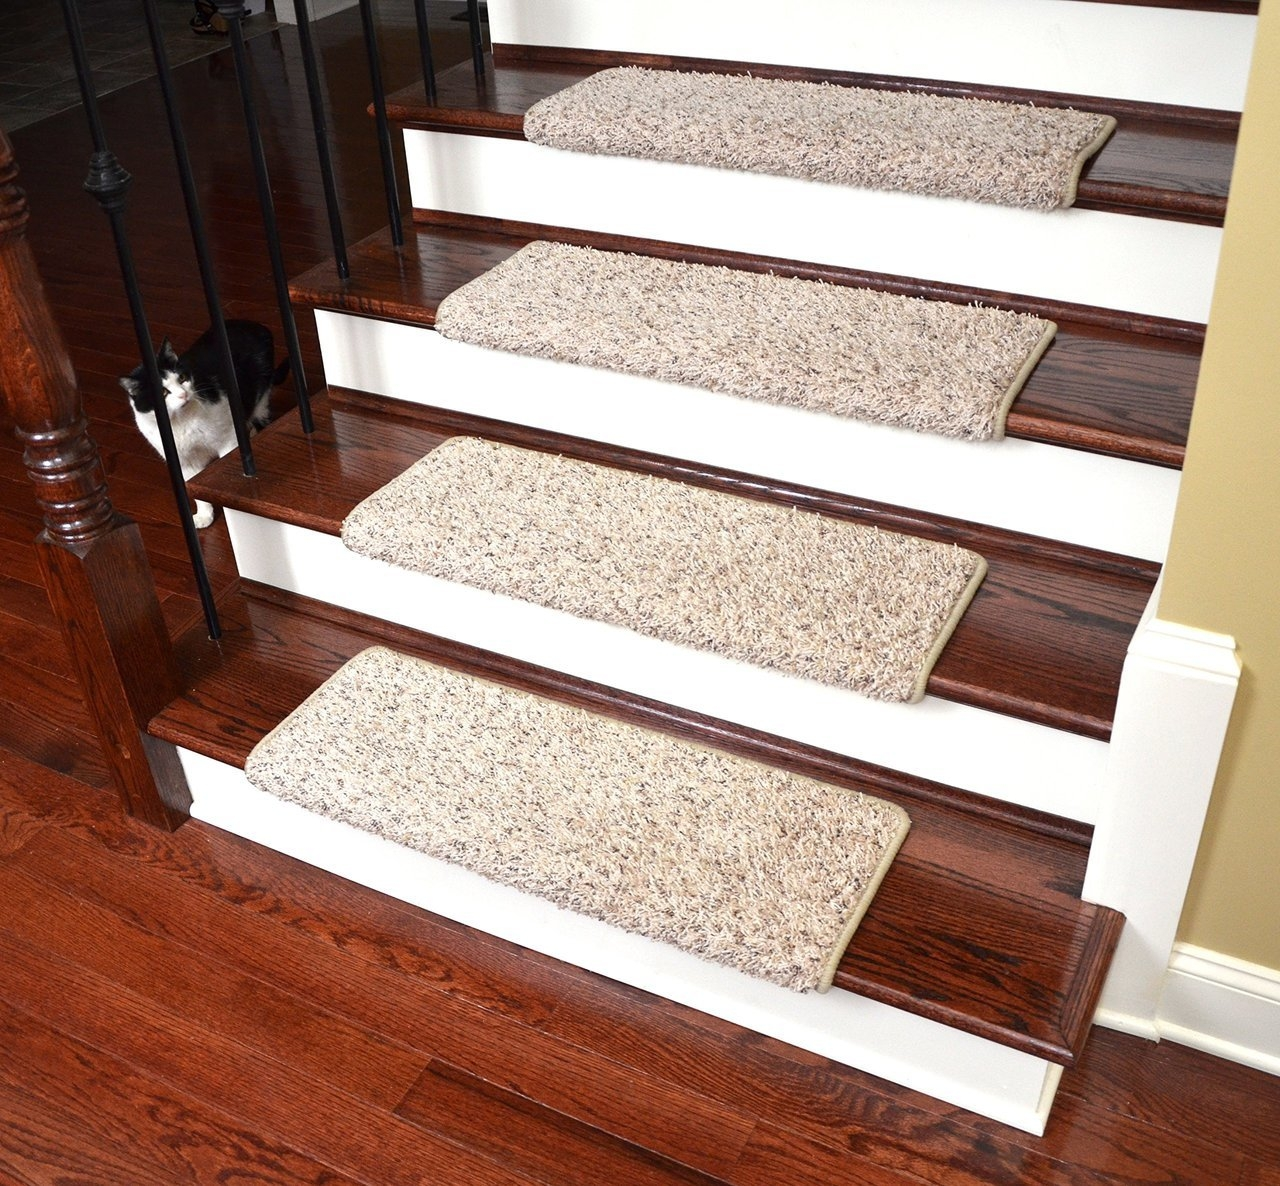 Excellent Stair Tread Rugs Canada 144 Stair Tread Rugs Canada Regarding Stair Treads And Matching Rugs (Image 5 of 15)